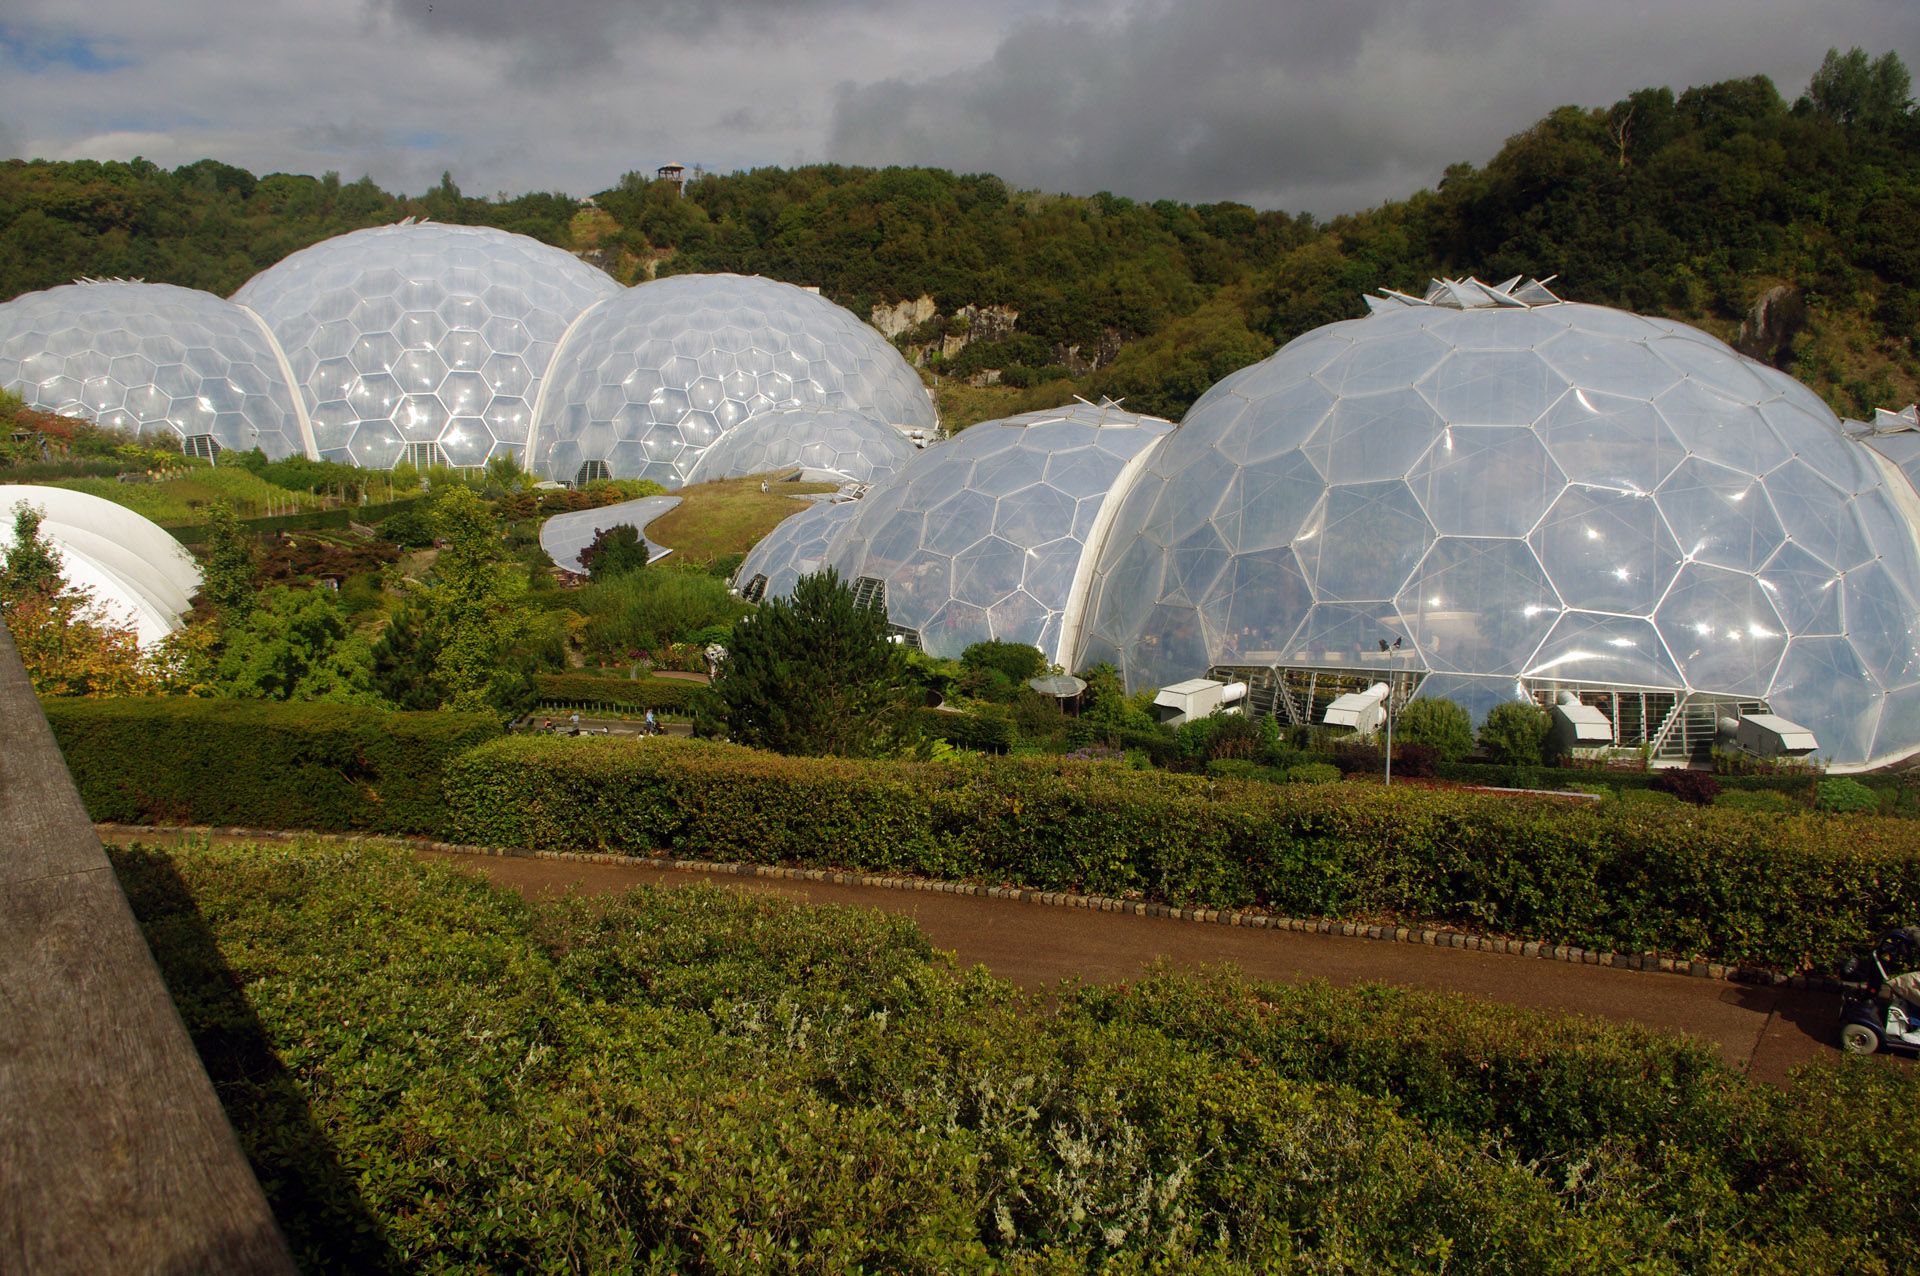 cornwall Eden Project Cornwall Biomes botanical theme park created from disused quarry